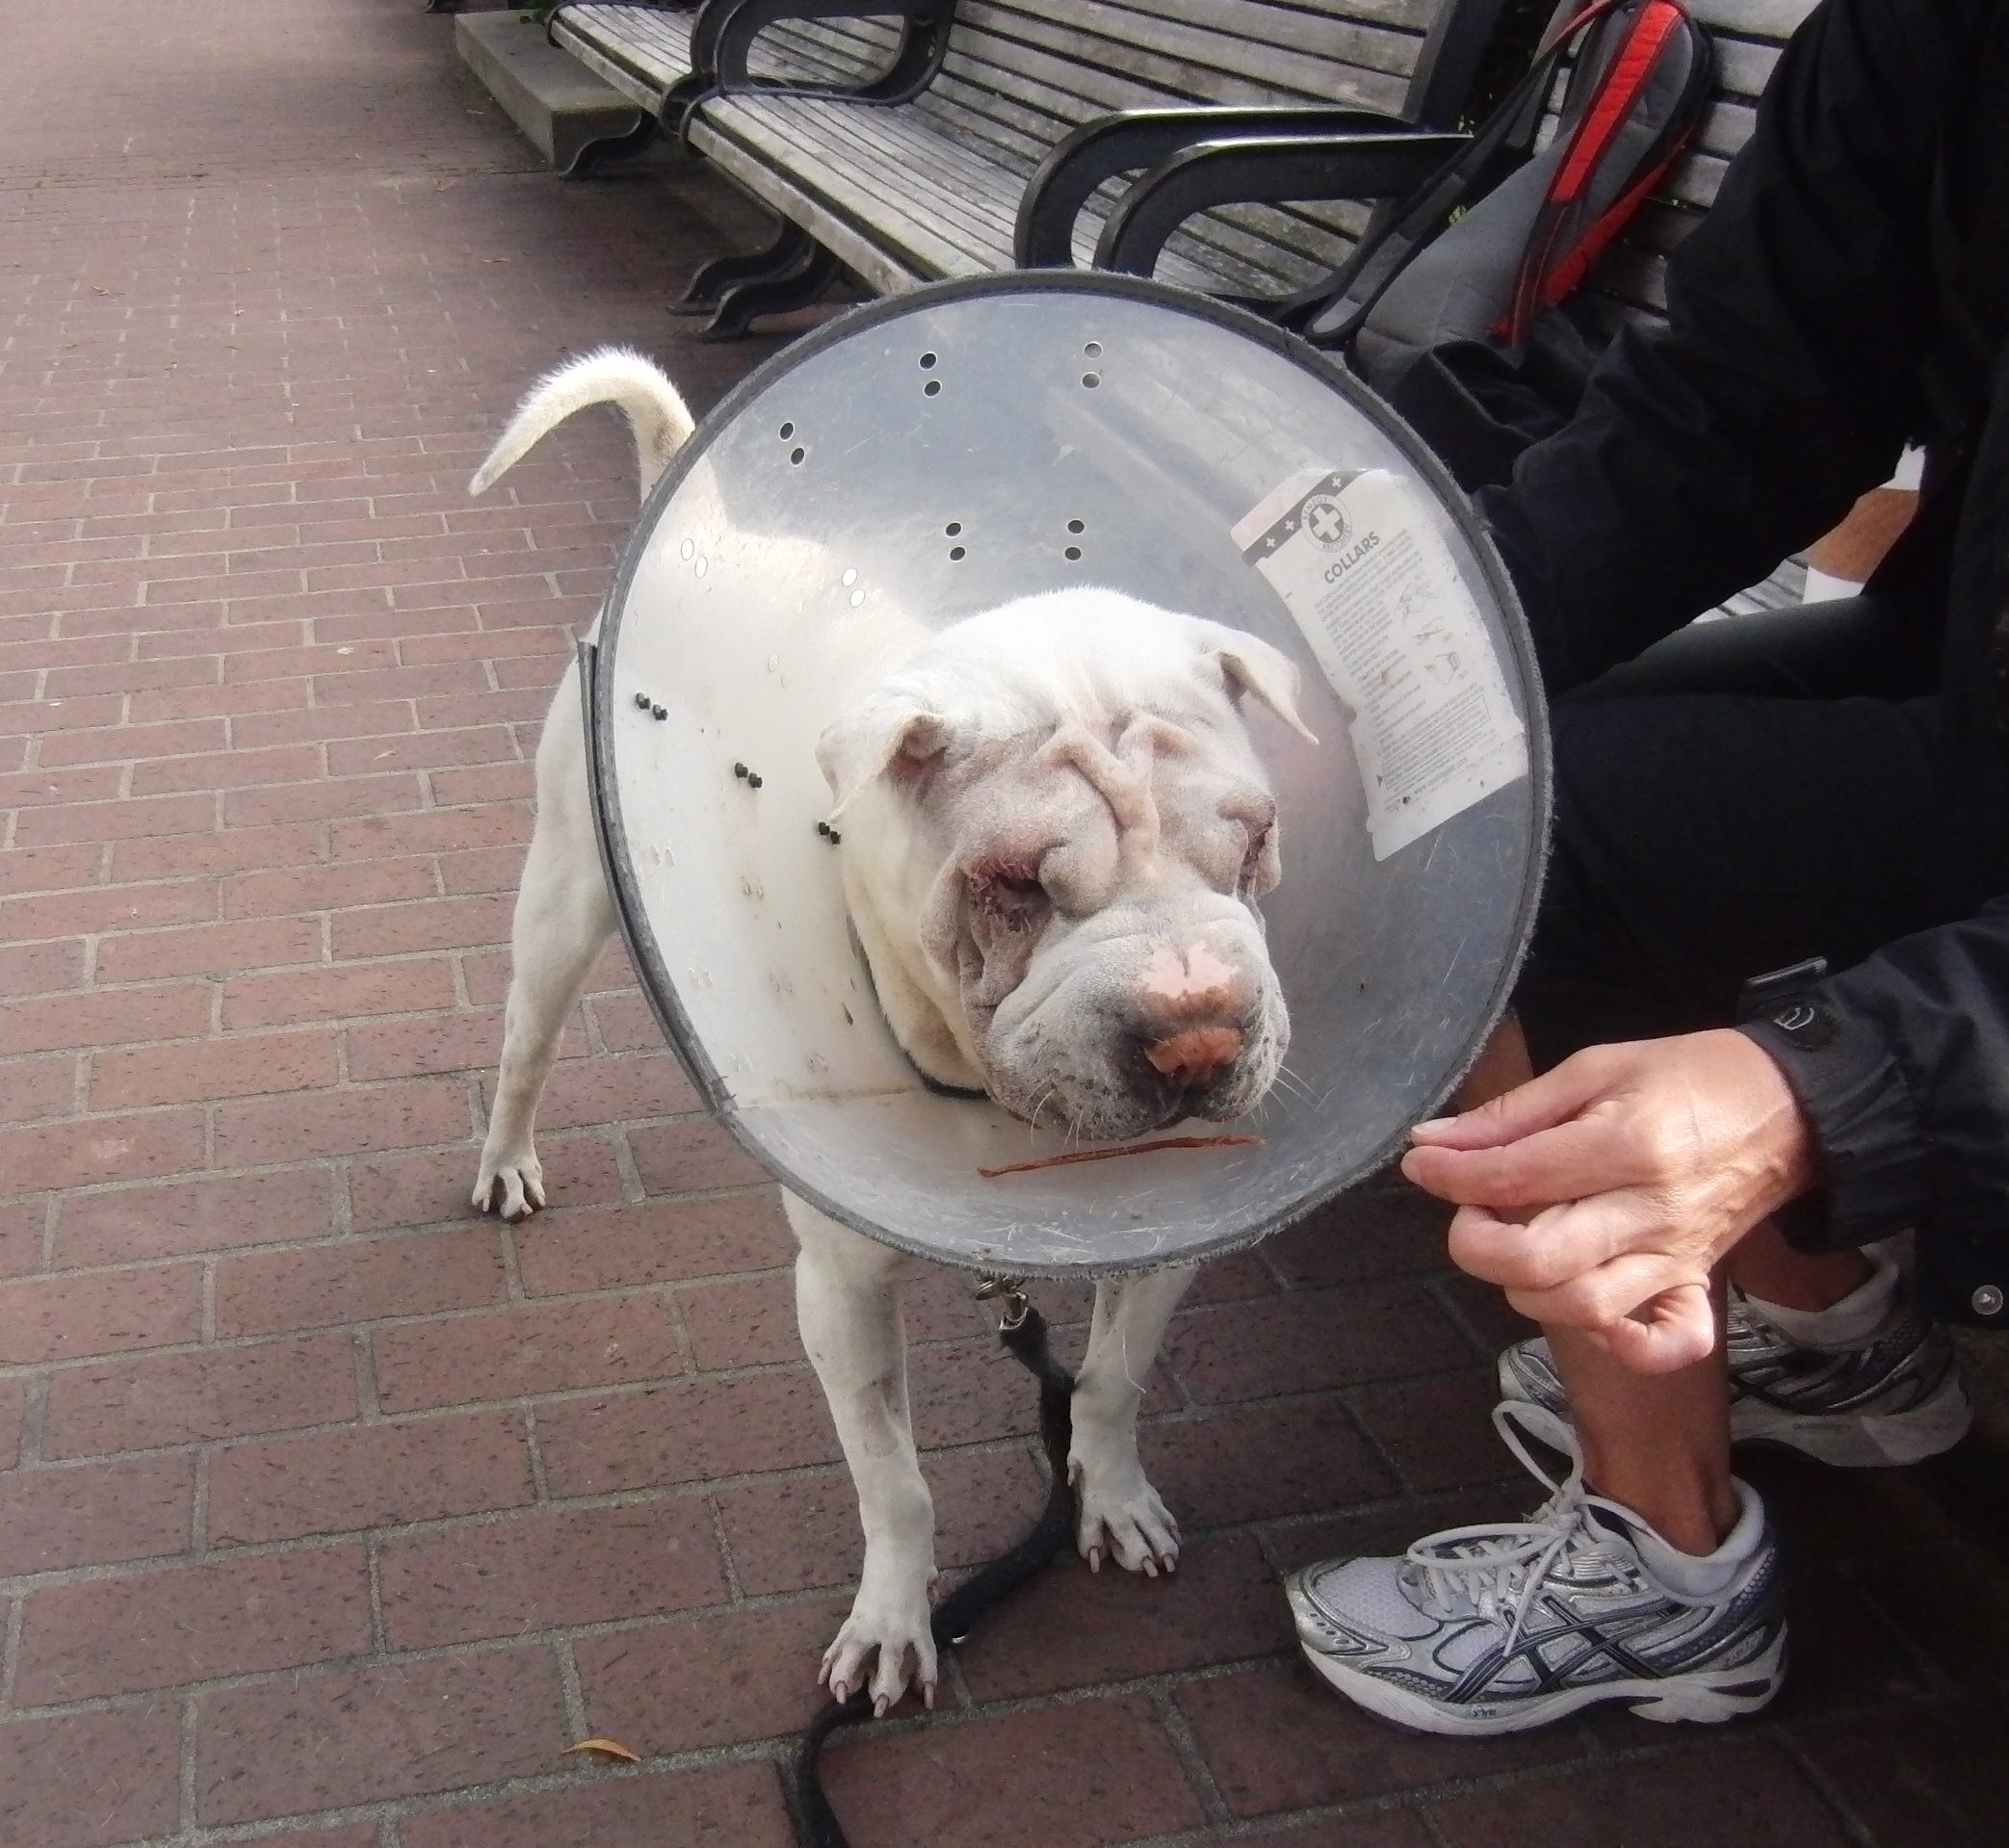 White Shar Pei who Dropped a Treat Into Her Cone of Shame